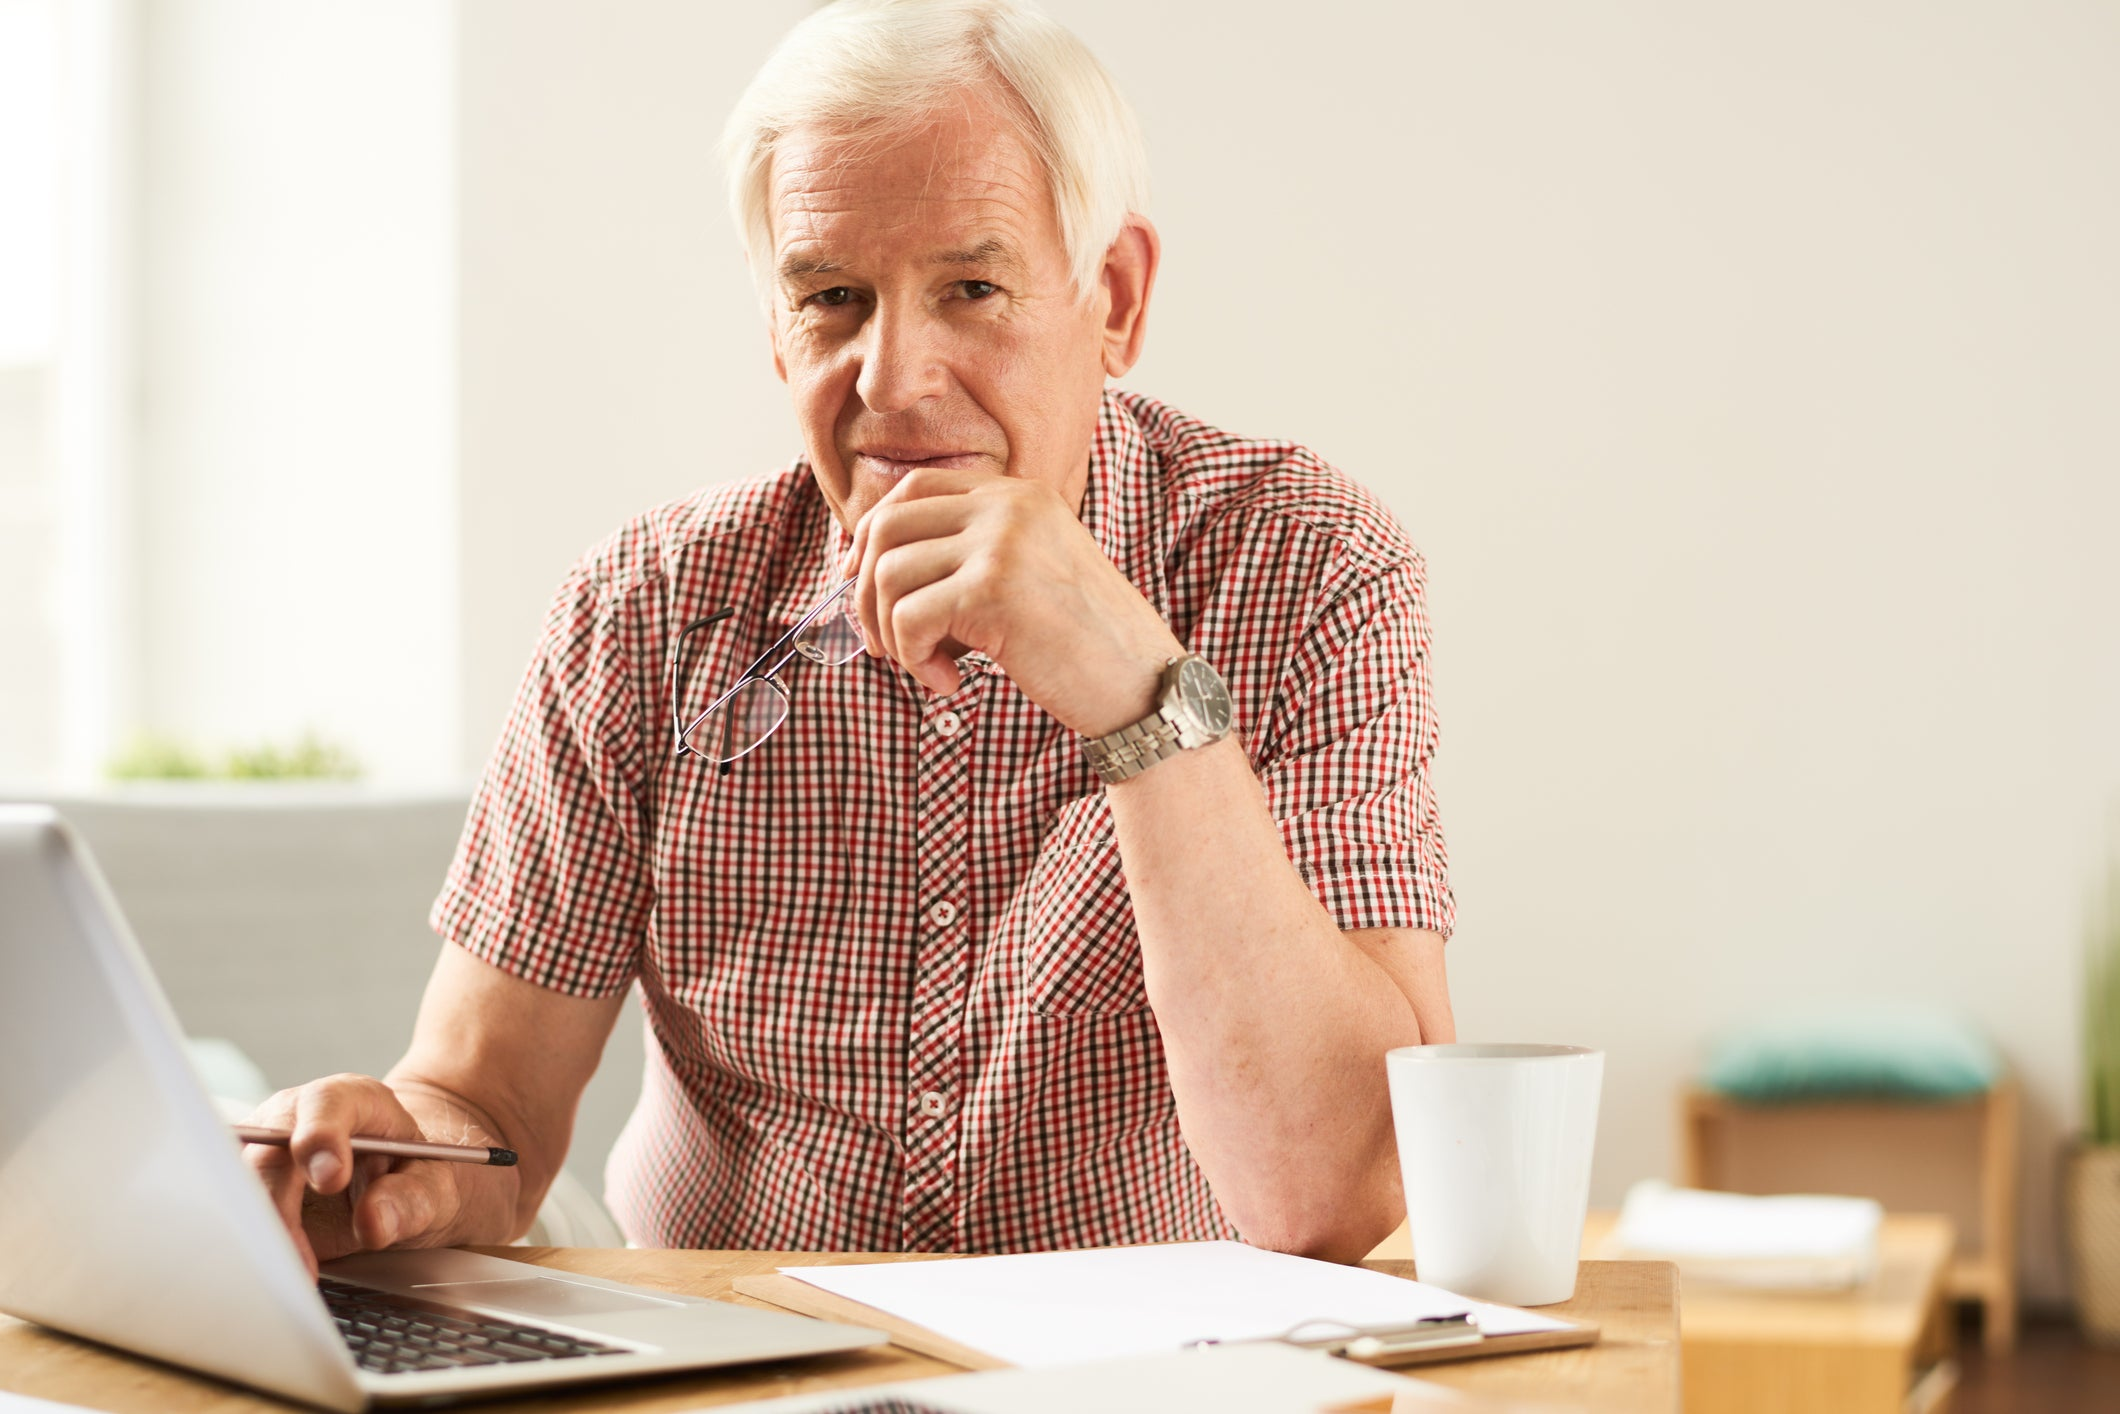 Older Workers Are Being Pushed Out of Their Jobs, and It's a Problem | The Motley Fool